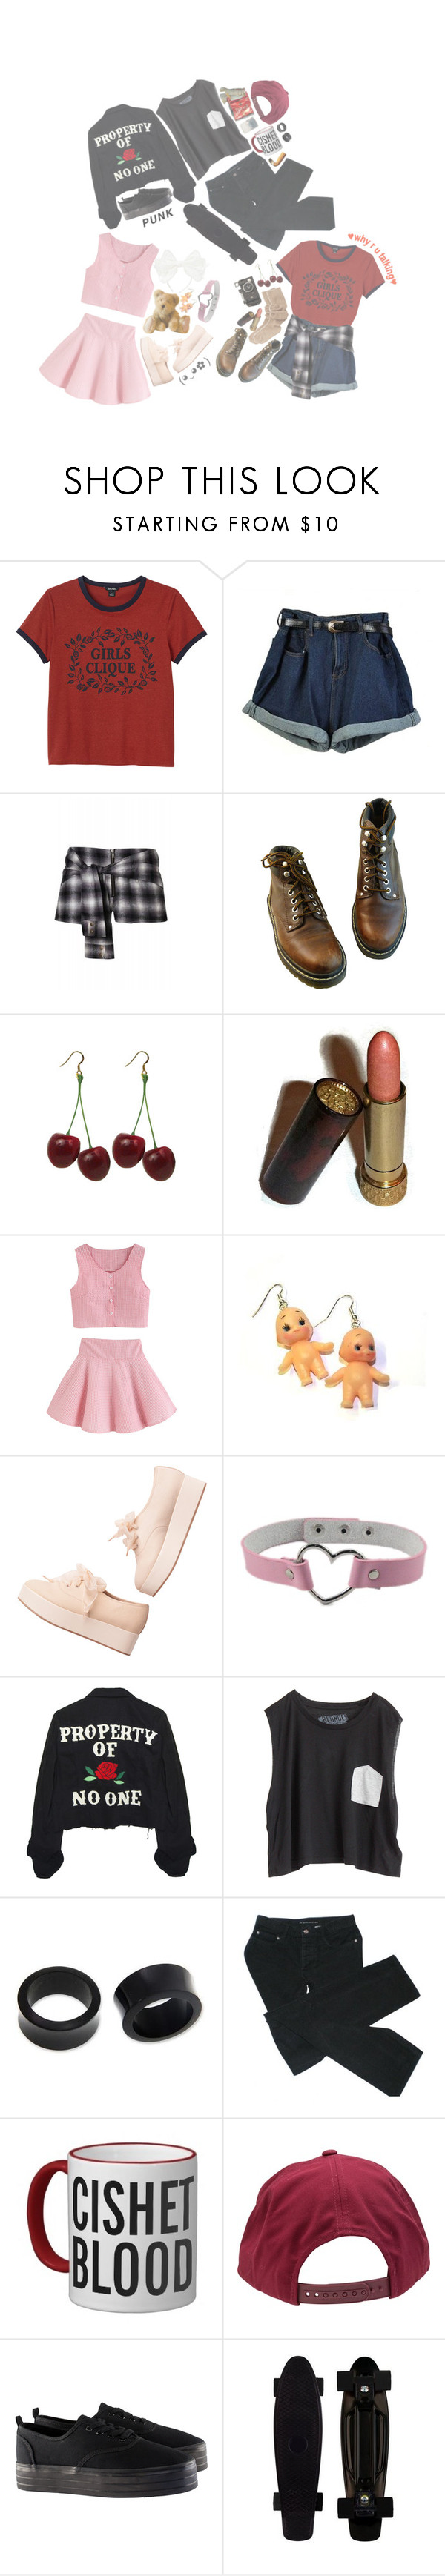 """""""♡ poly crew ♡"""" by cottoncandyprince ❤ liked on Polyvore featuring Monki, Avon, Hannah Makes Things, High Heels Suicide, Blondes Make Better T-Shirts, NOVICA, Marc by Marc Jacobs, Ugo Cacciatori, Brixton and H&M"""